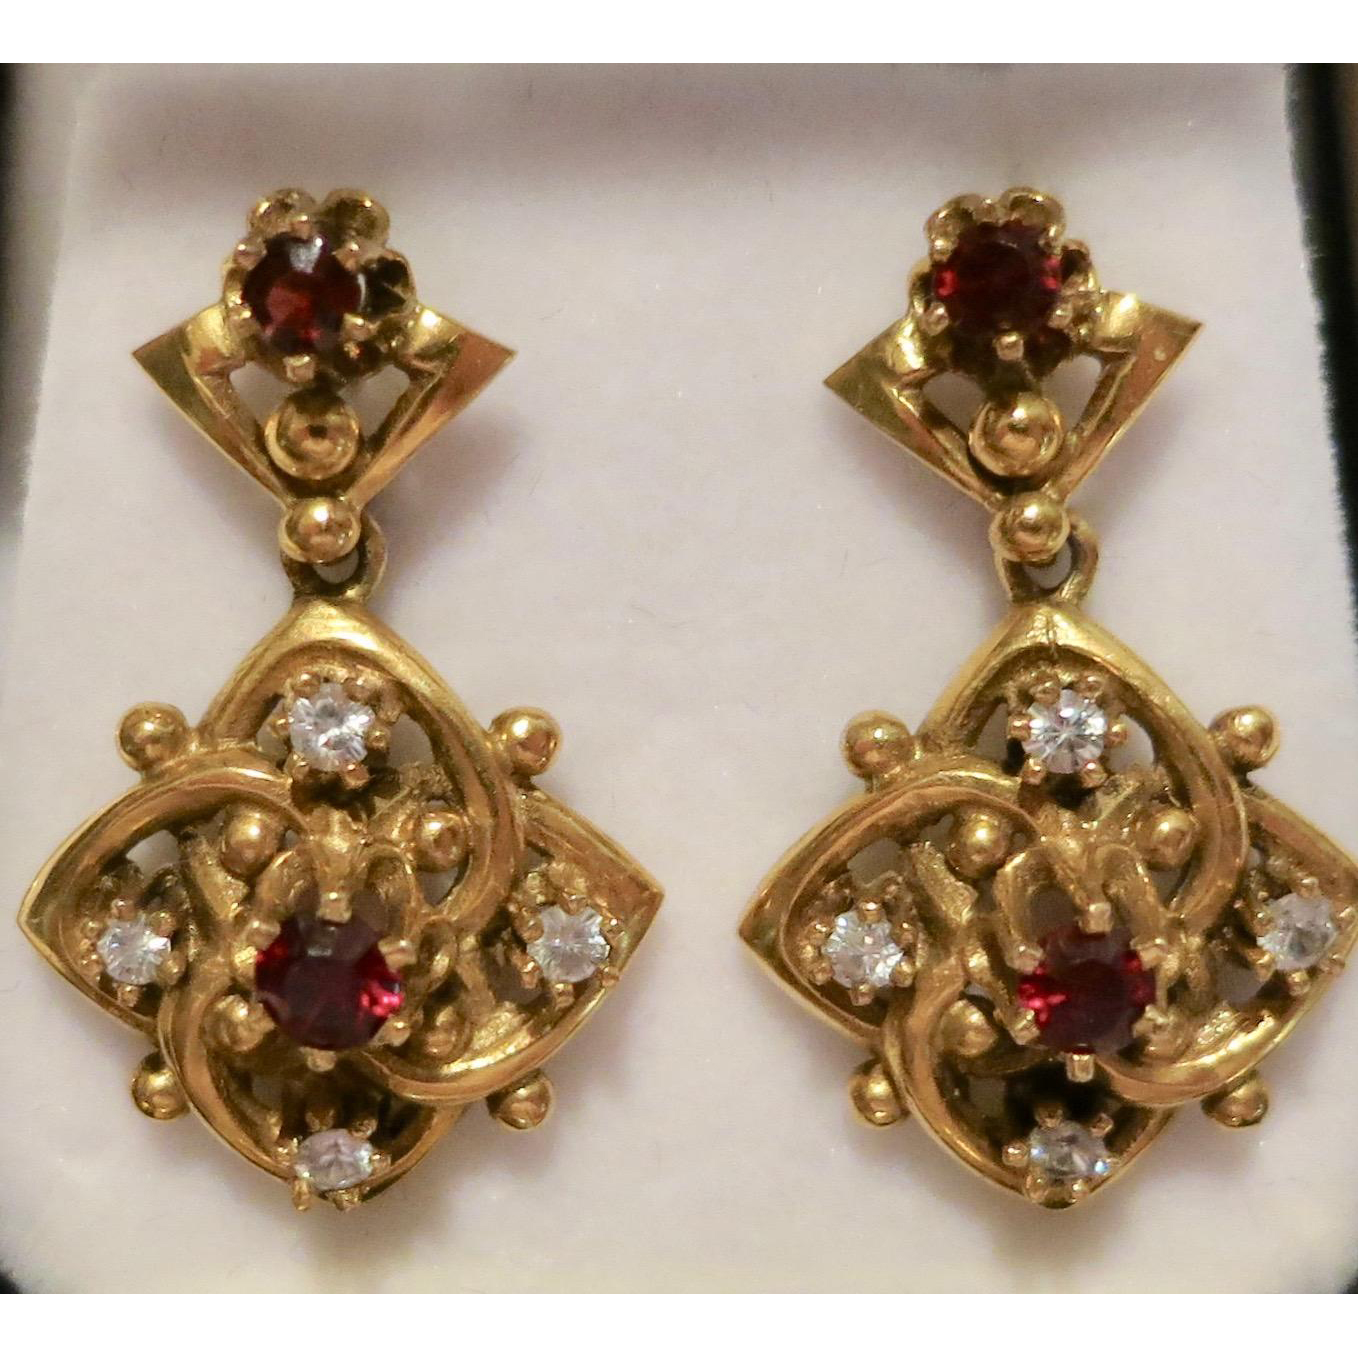 21++ Sell antique jewelry near me viral